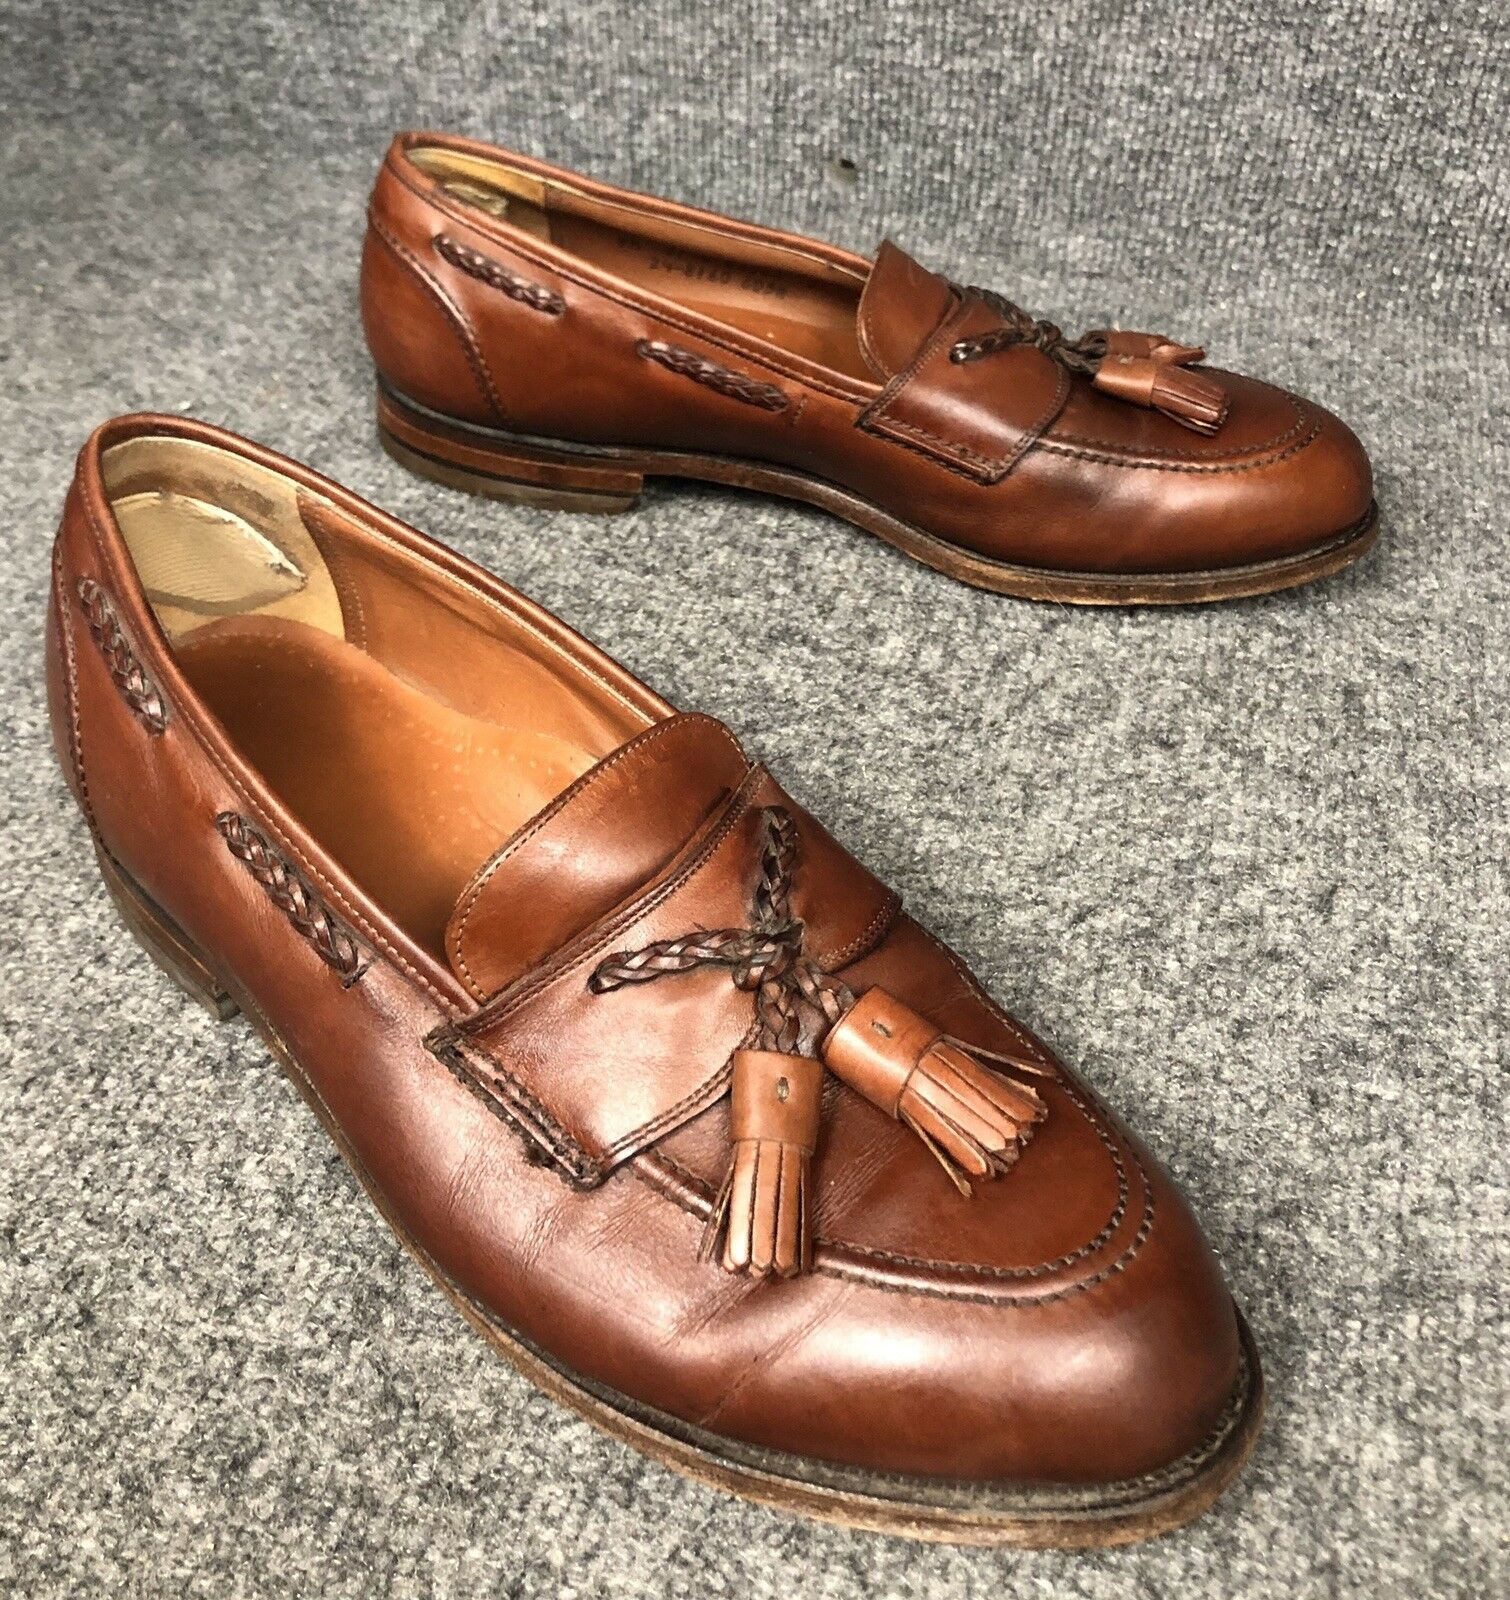 Johnston & Murphy Crown Aristocraft Brown Leather Tassel Loafers Sz 9.5 E In E